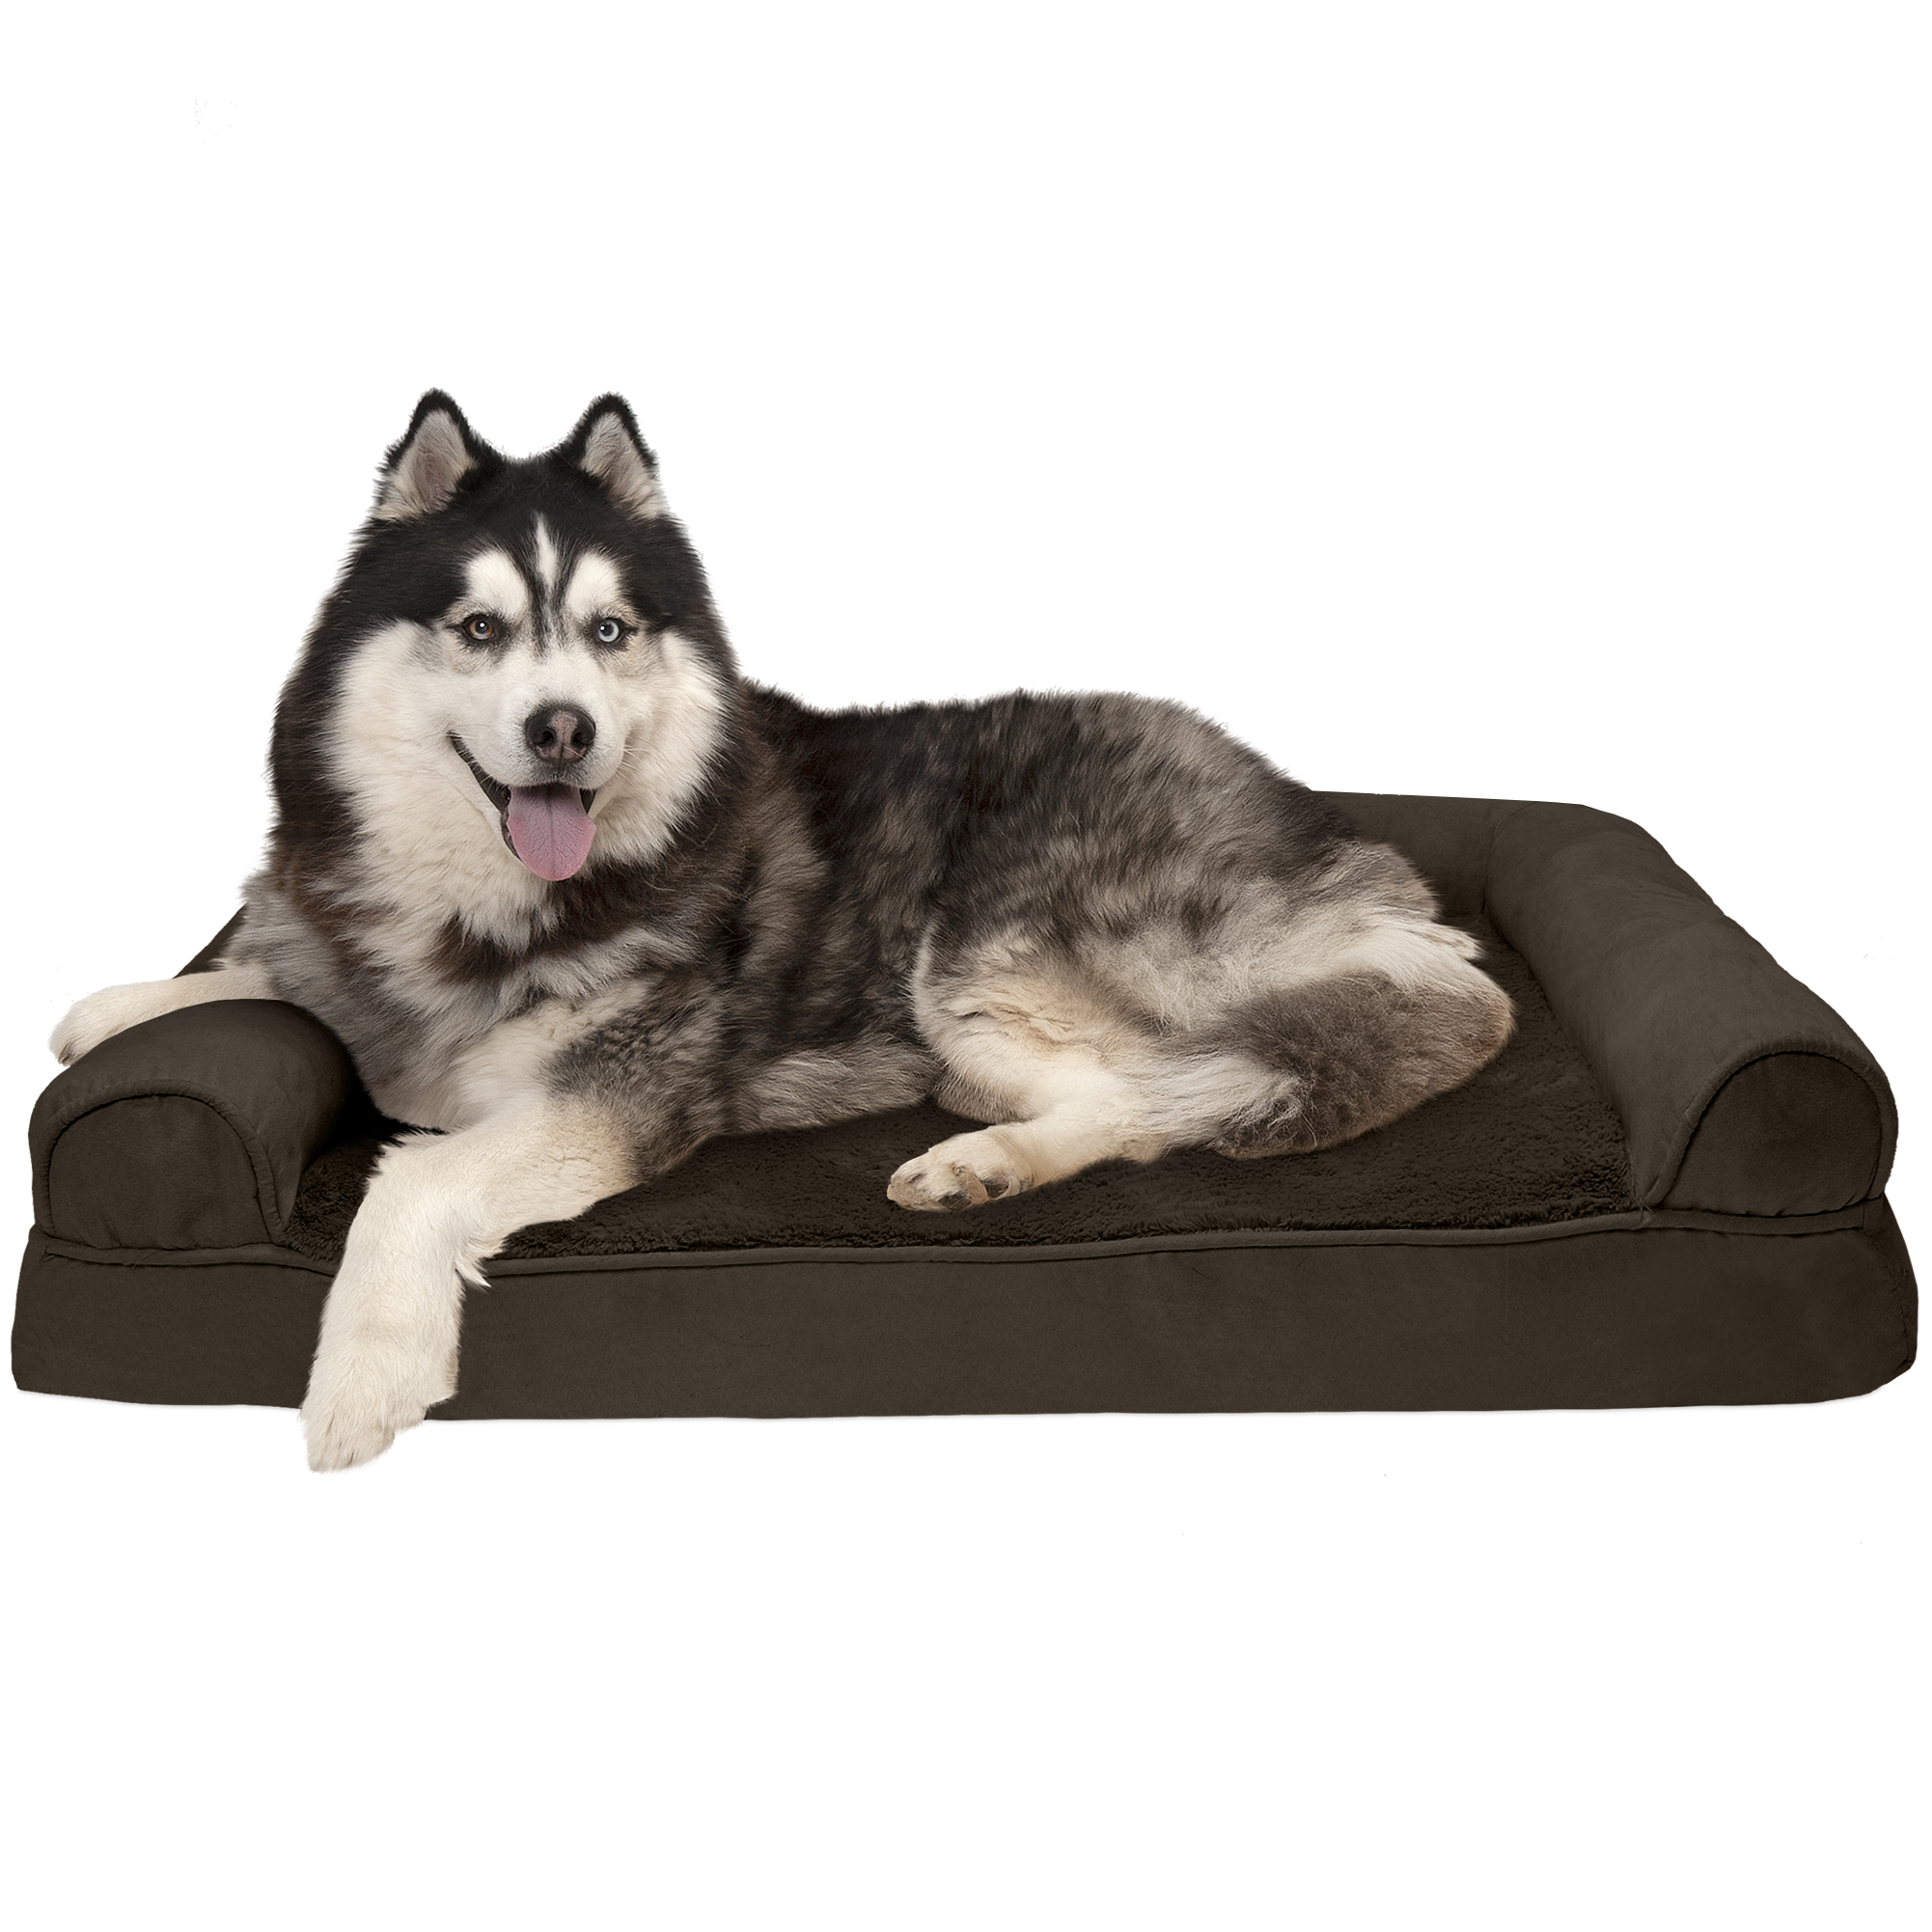 FurHaven Pet Dog Bed | Memory Foam Plush & Suede Couch Sofa-Style Pet Bed for Dogs & Cats, Espresso, Jumbo